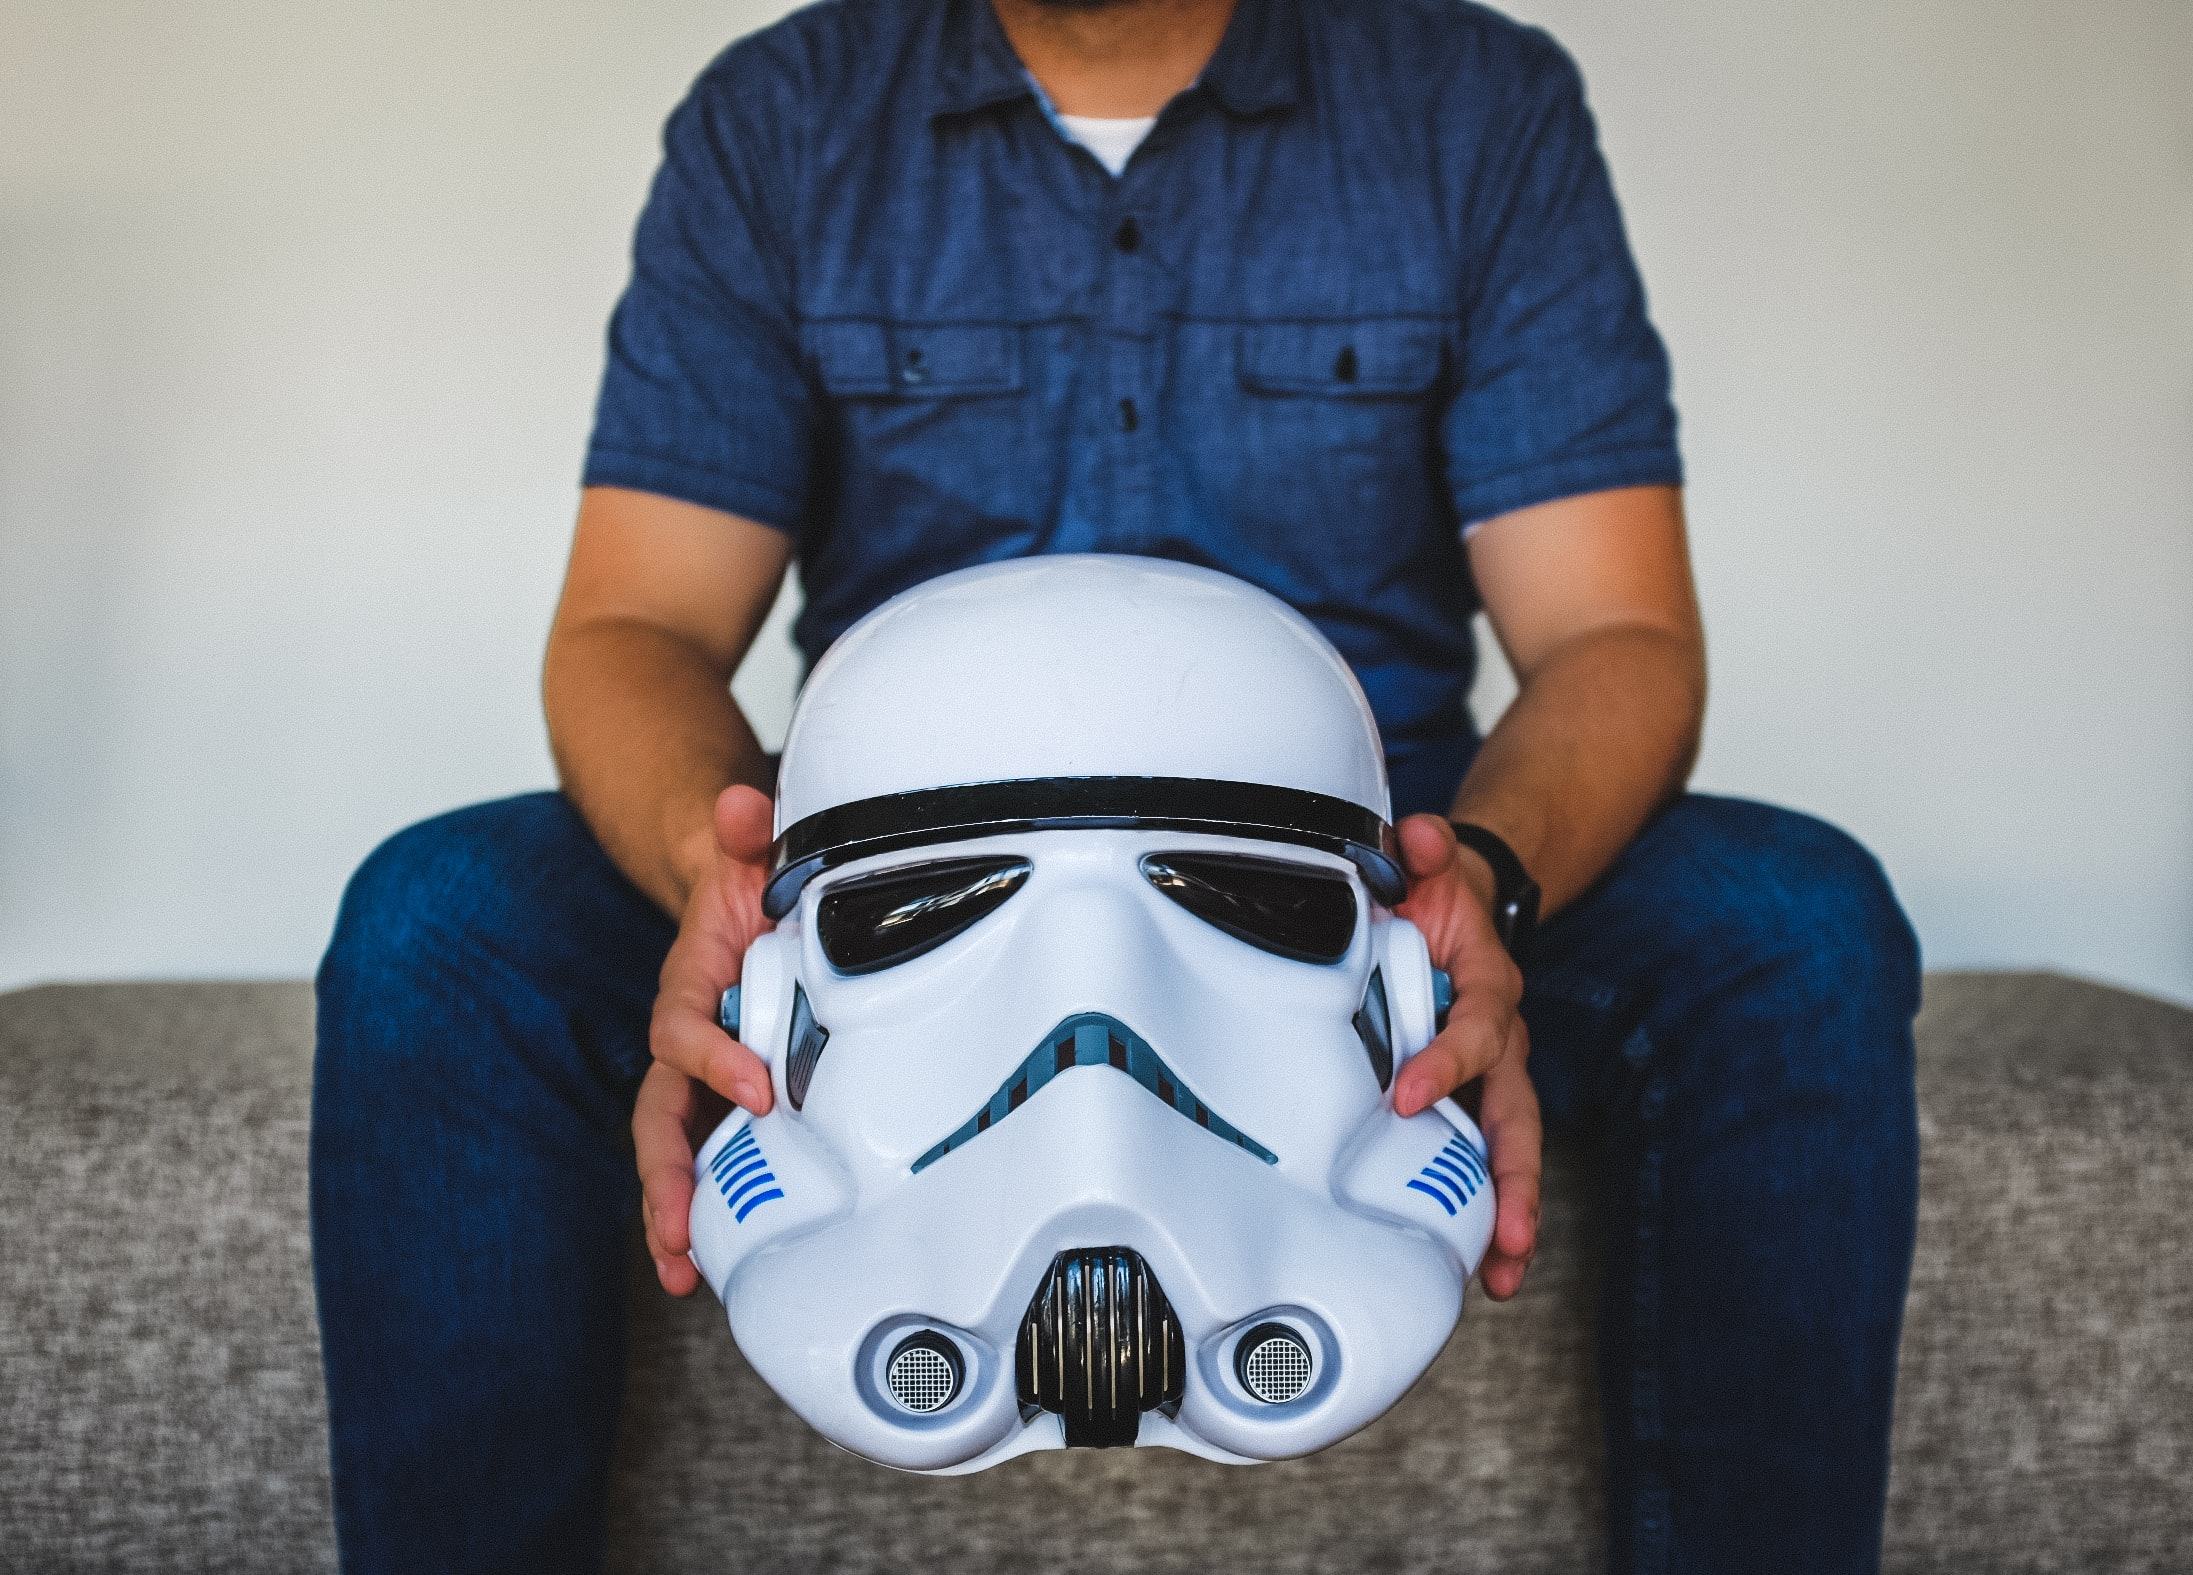 Star Wars white Darth Vader mask held by a sitting man